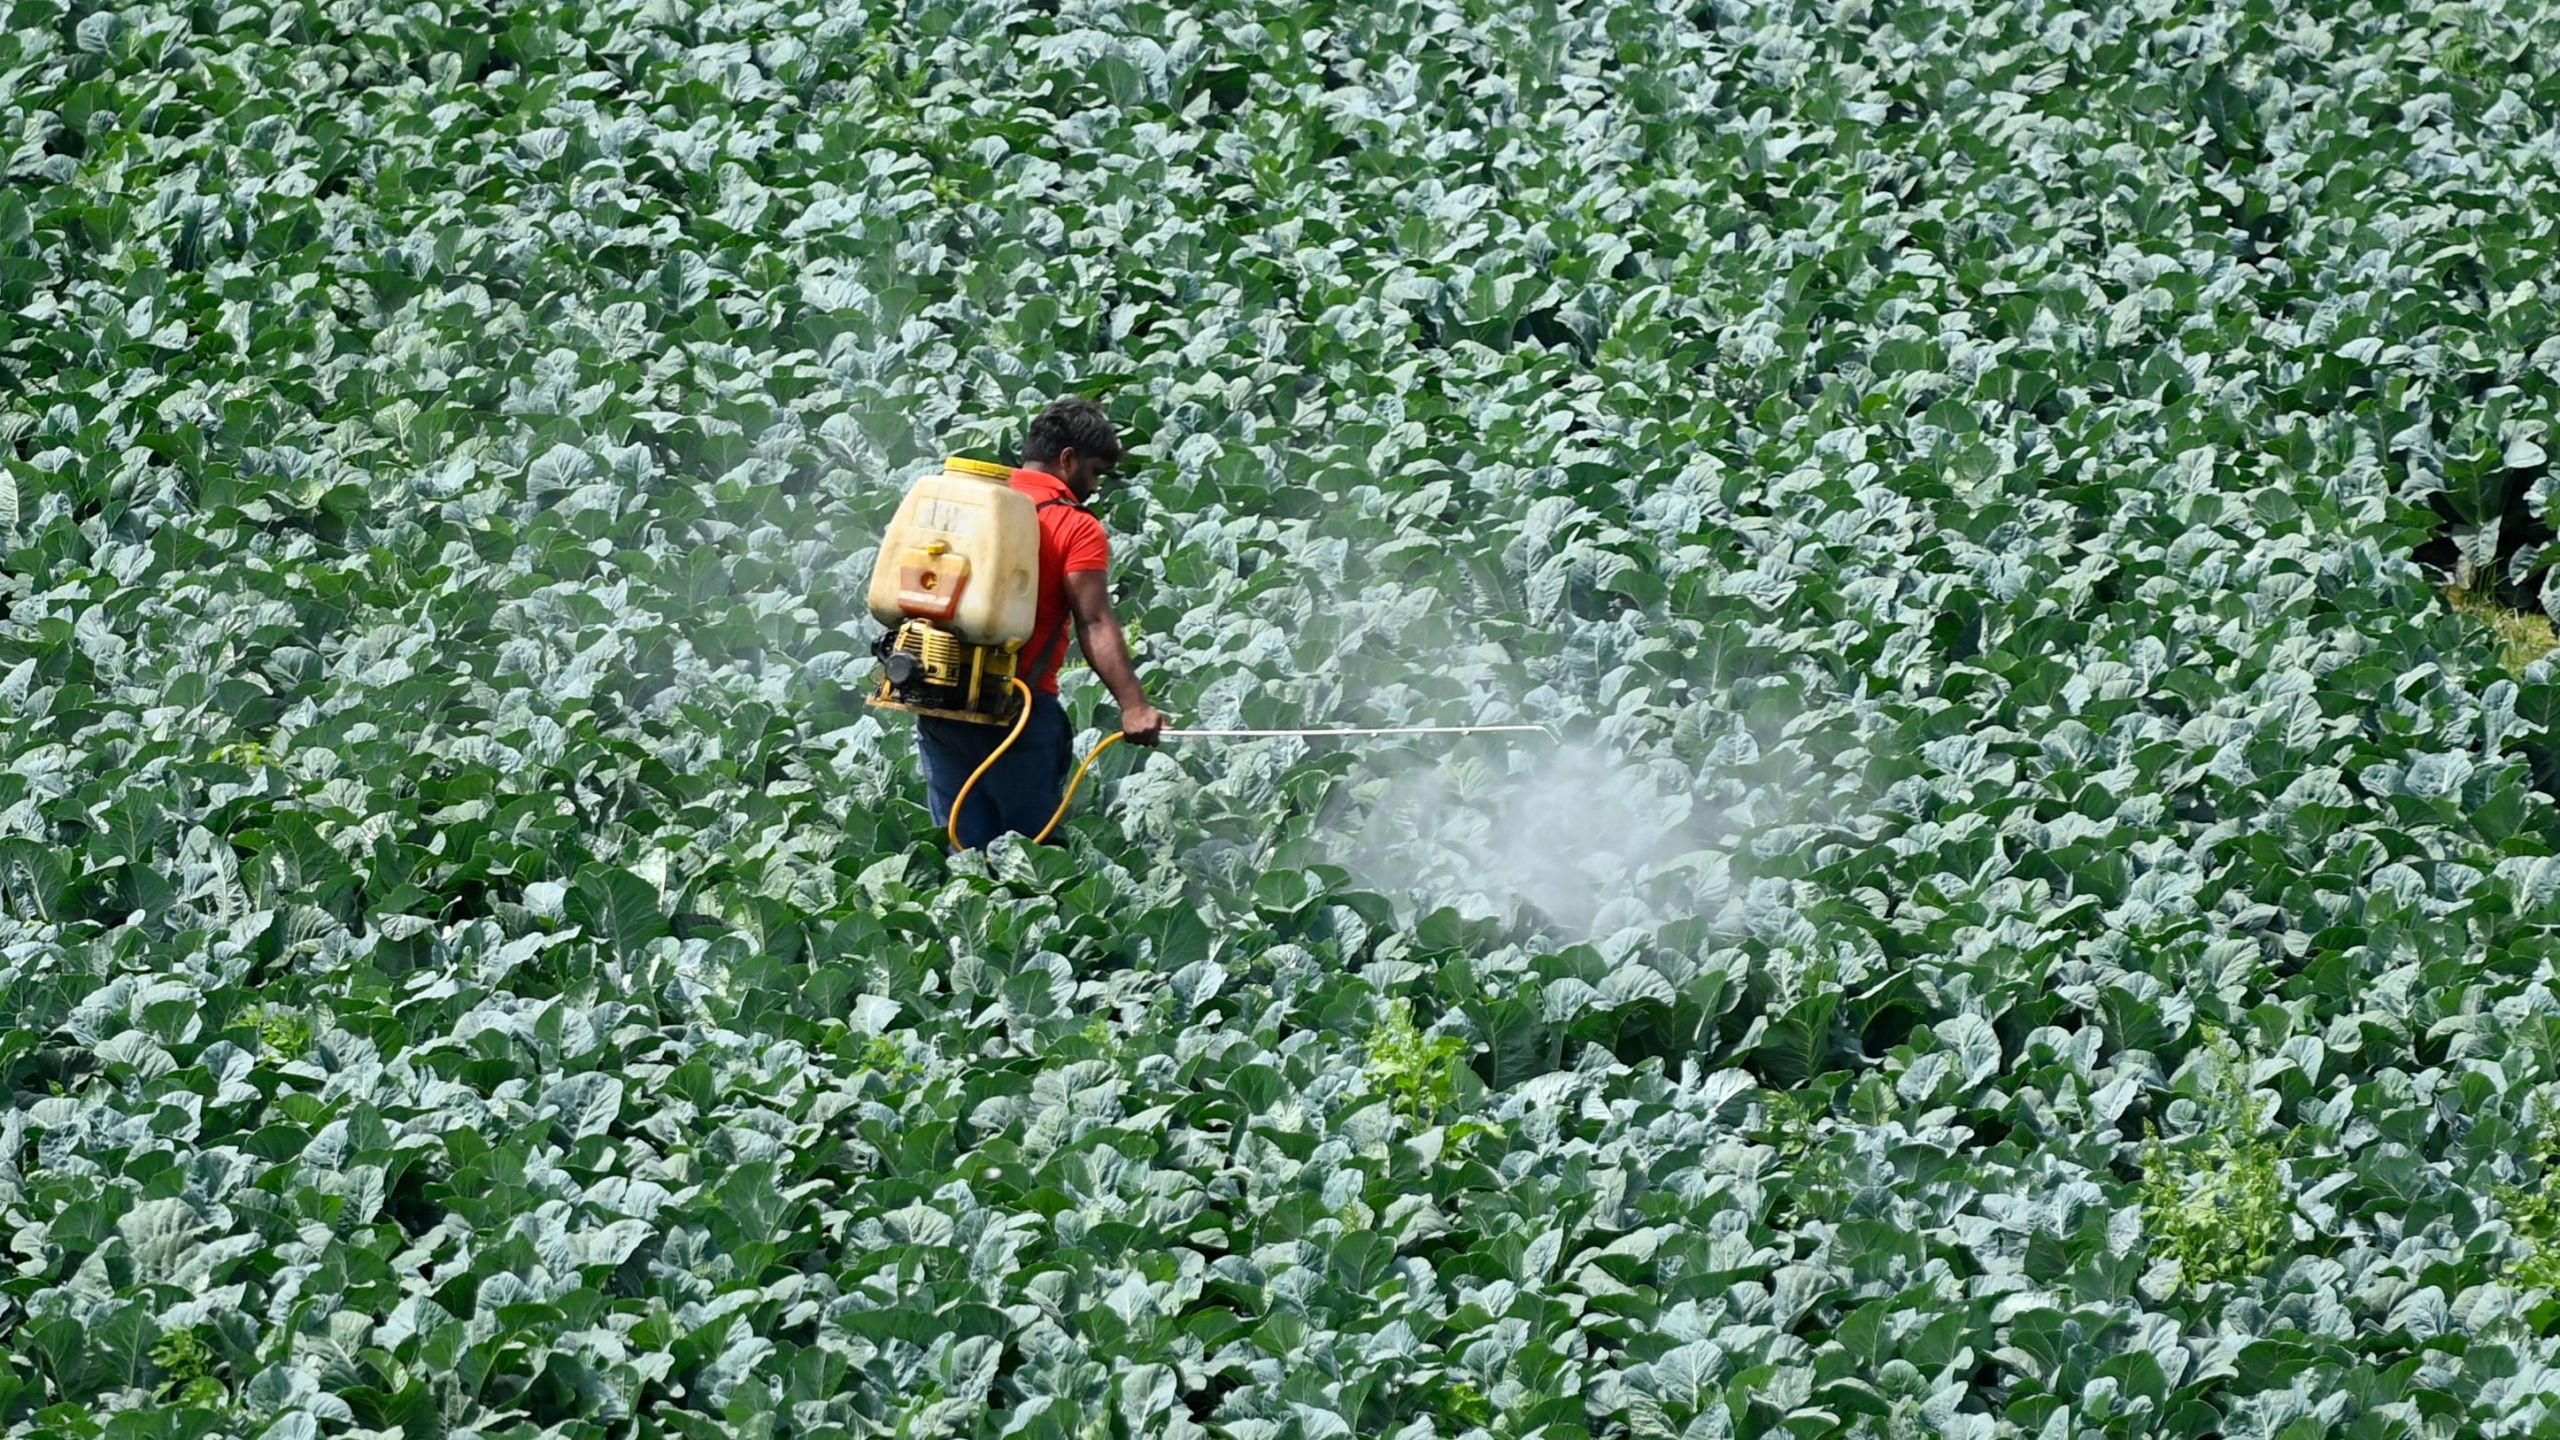 A farmer sprays pesticide on the crop in a field in New Delhi on March 15, 2021. (MONEY SHARMA/AFP via Getty Images)